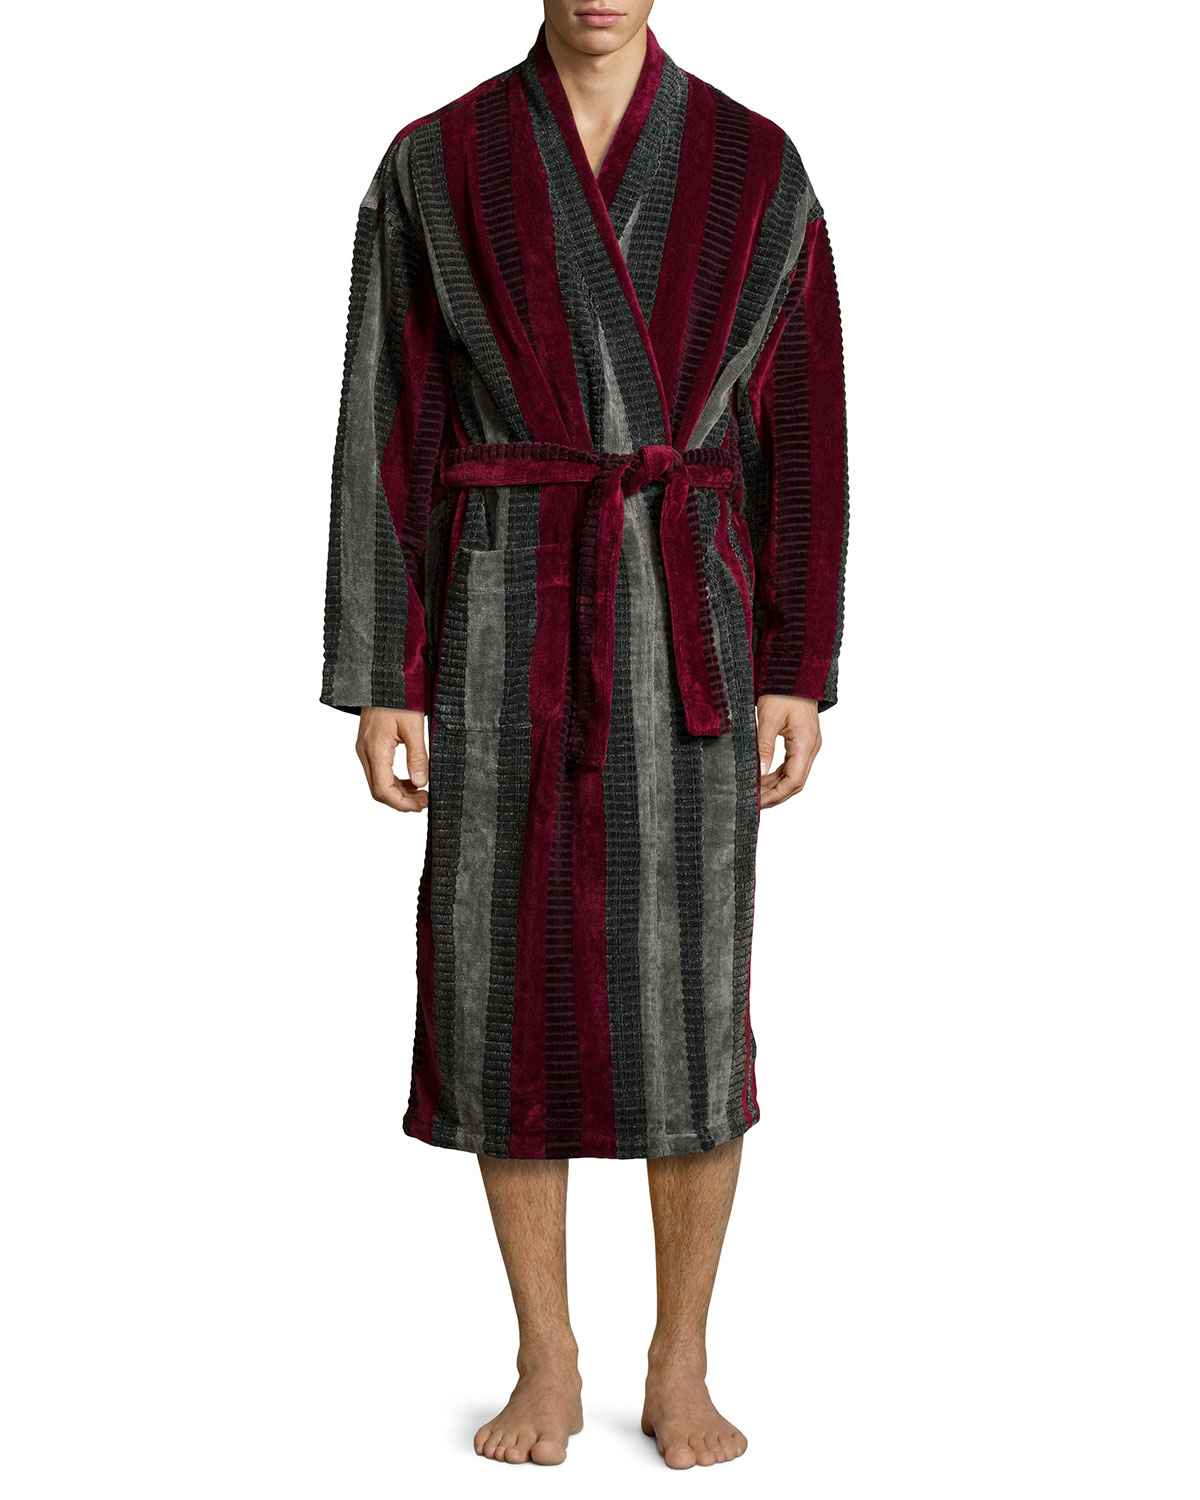 lyst ike behar terry cloth striped robe in purple for men. Black Bedroom Furniture Sets. Home Design Ideas